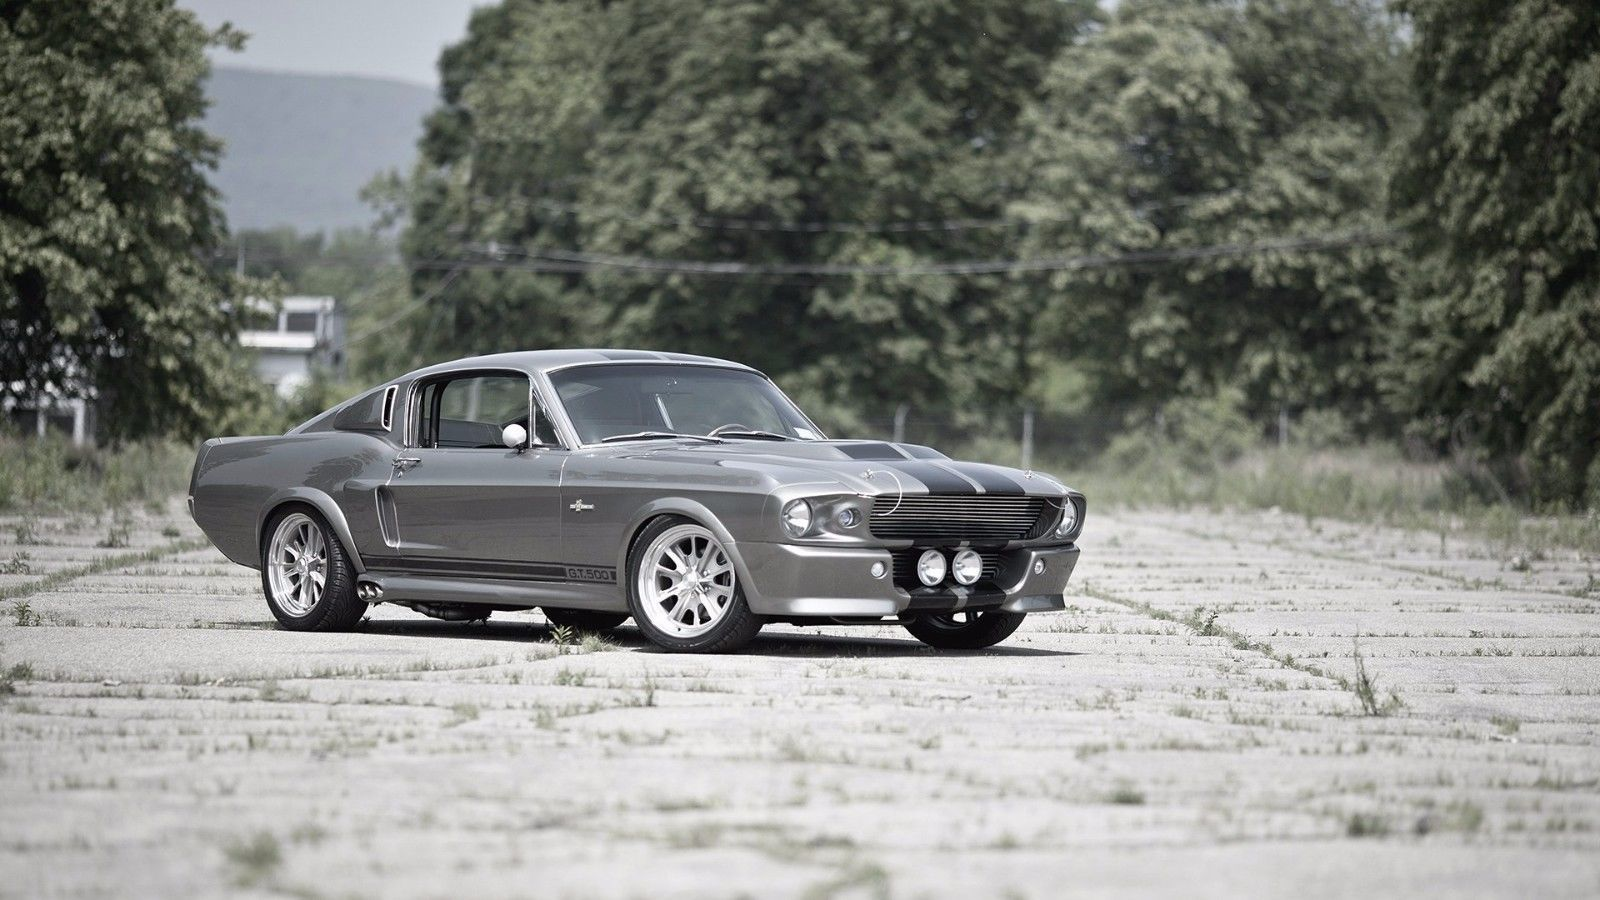 Primary image for 1967 Ford Mustang Shelby GT500 24X36 inch poster, sports car, muscle car